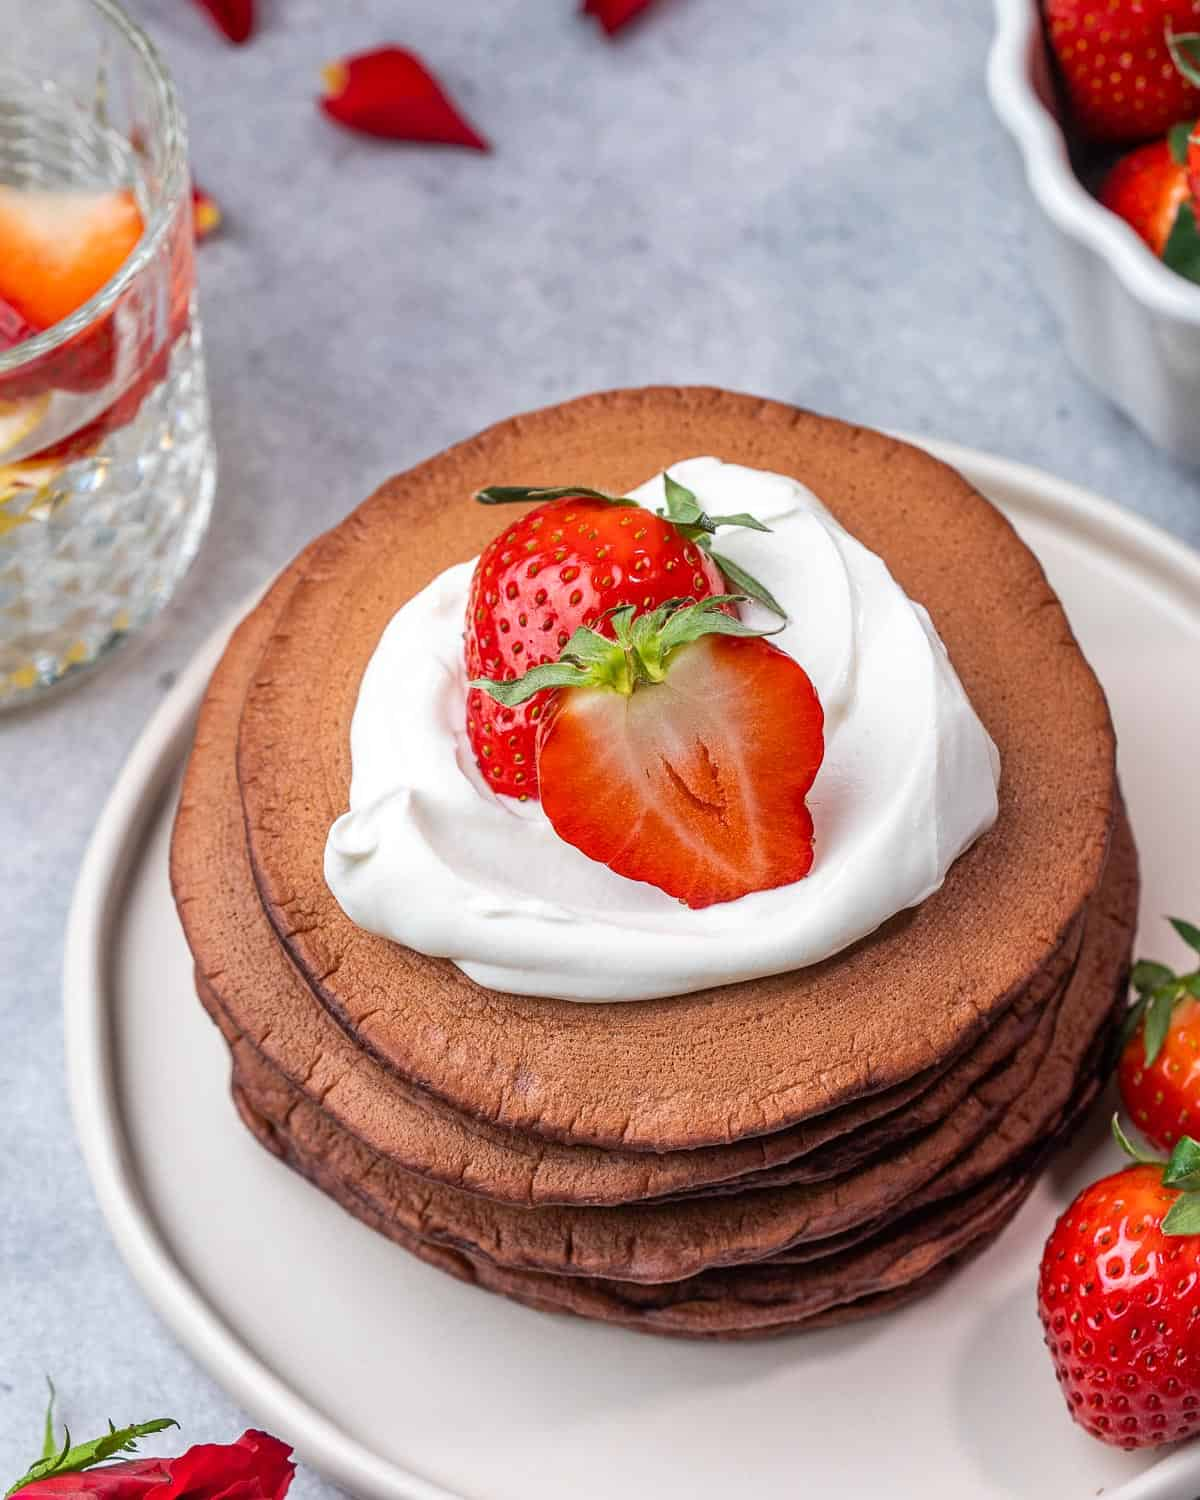 Top view of red velvet pancakes topping with cream cheese and strawberries.